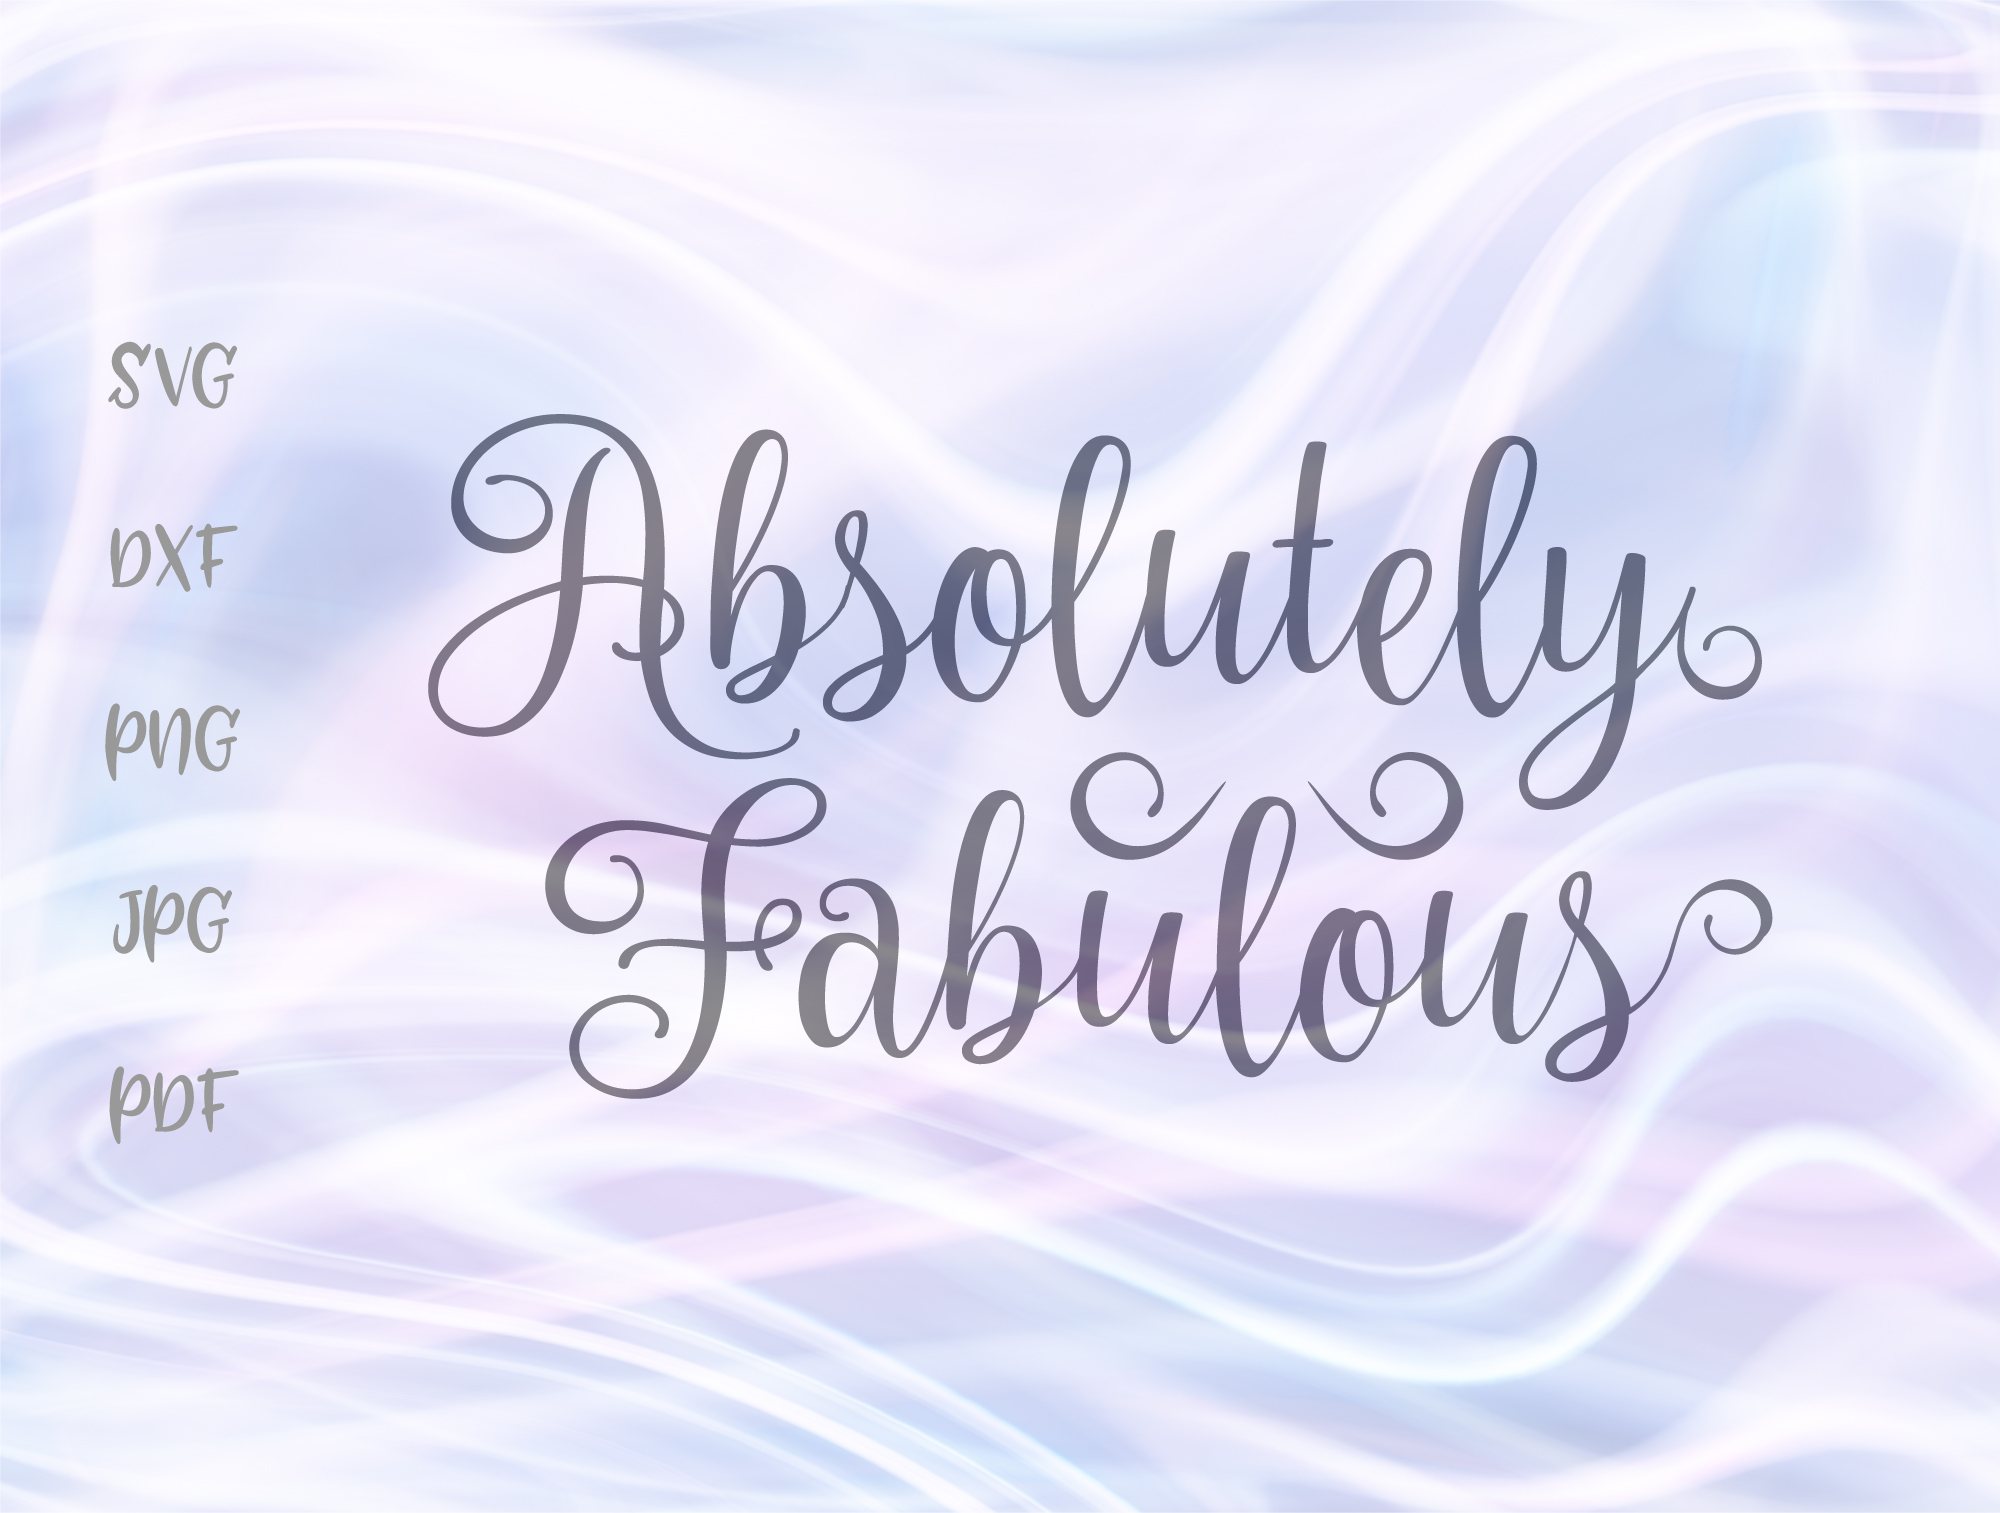 Download Free Absolutely Fabulous Graphic By Digitals By Hanna Creative Fabrica for Cricut Explore, Silhouette and other cutting machines.